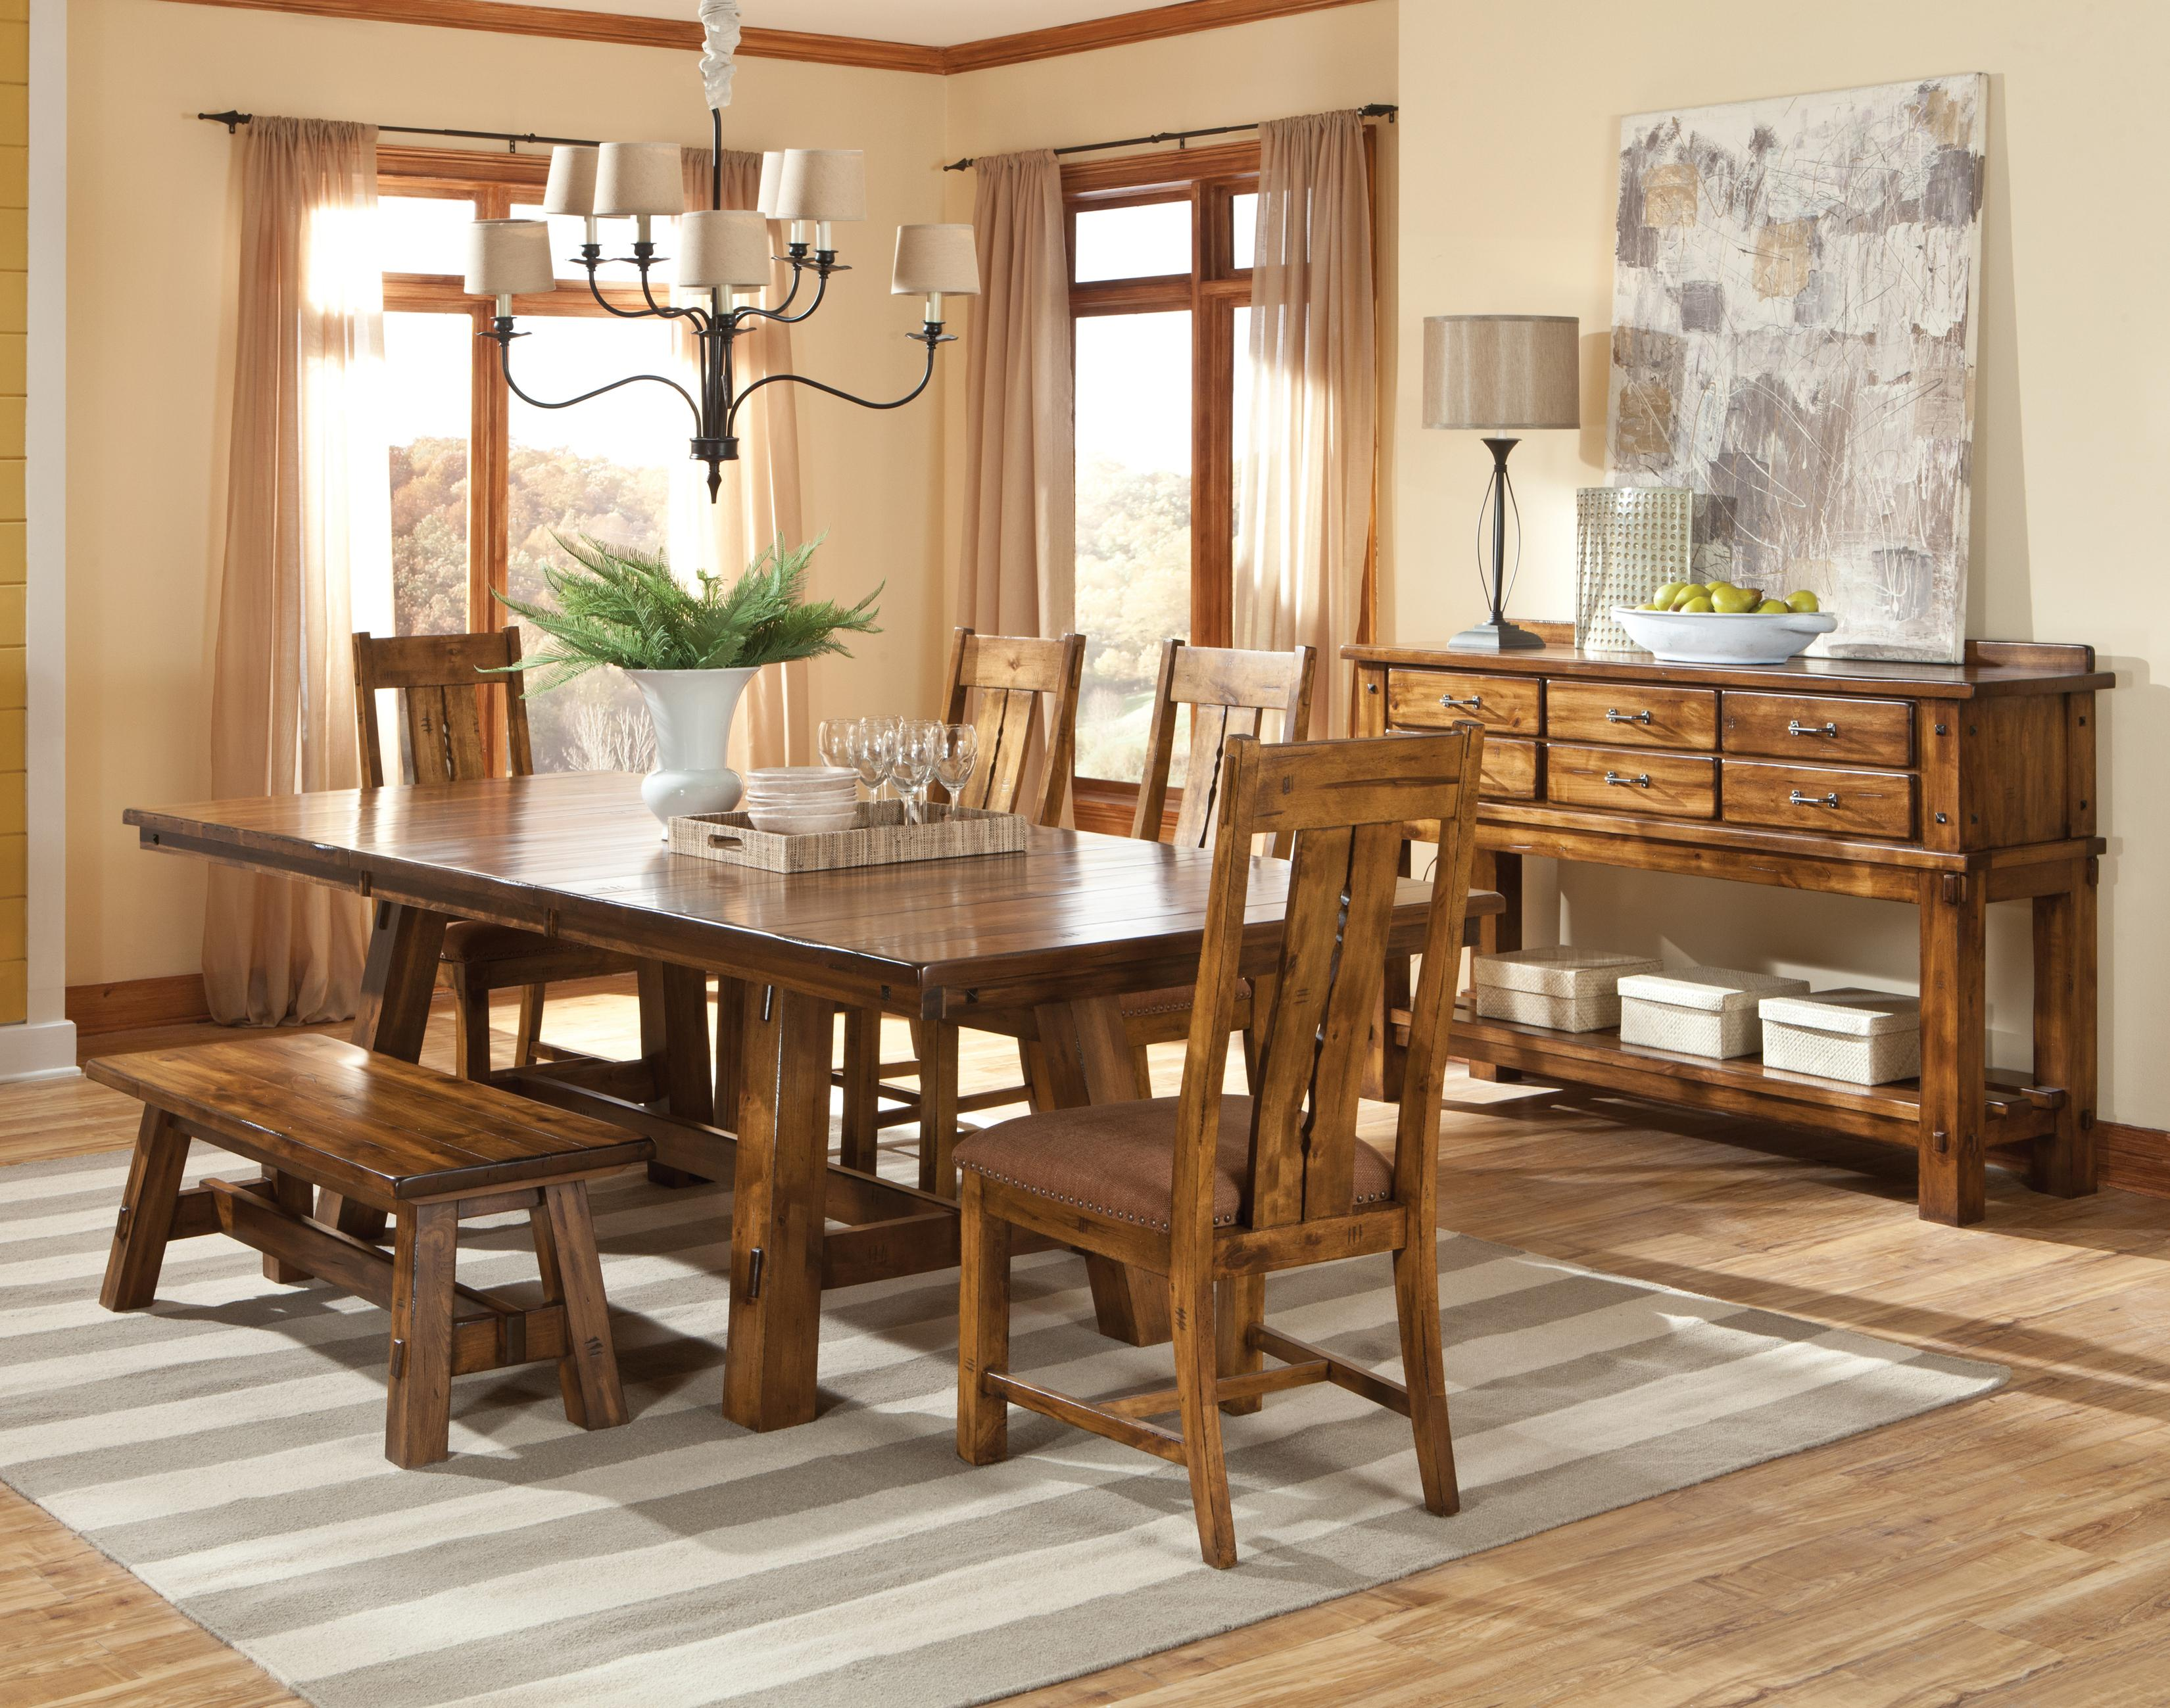 6 Piece Wood Table Chairs And Bench Set By Intercon Wolf And